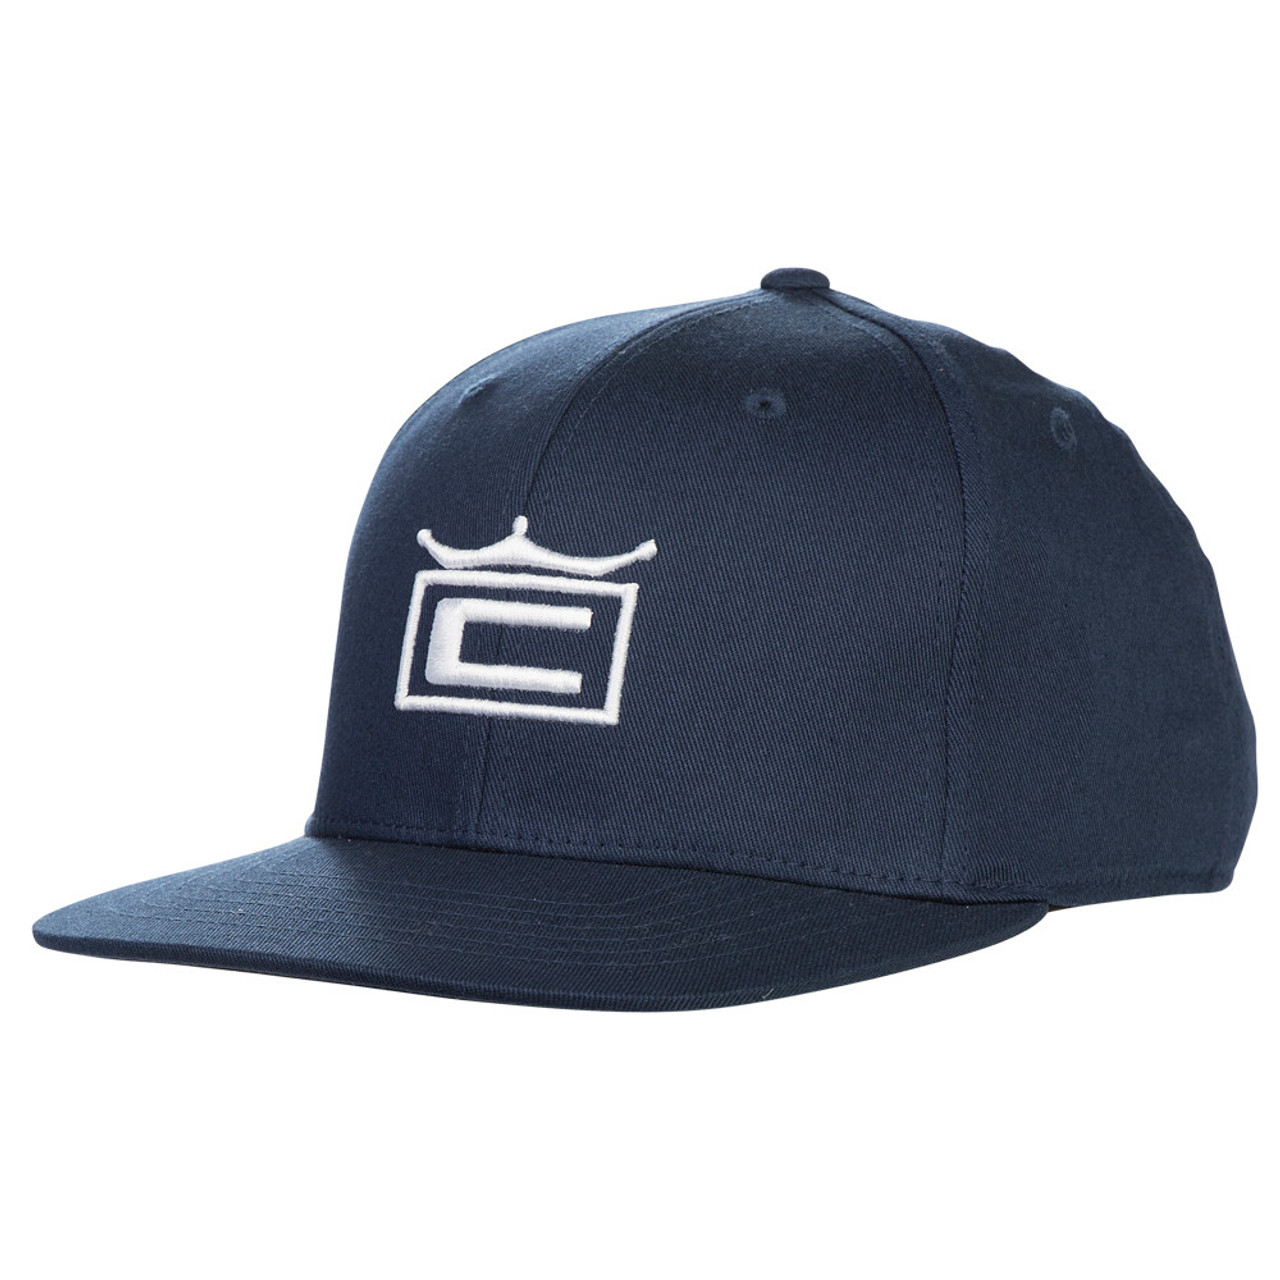 Cobra Tour Crown Snapback Cap - Peacoat